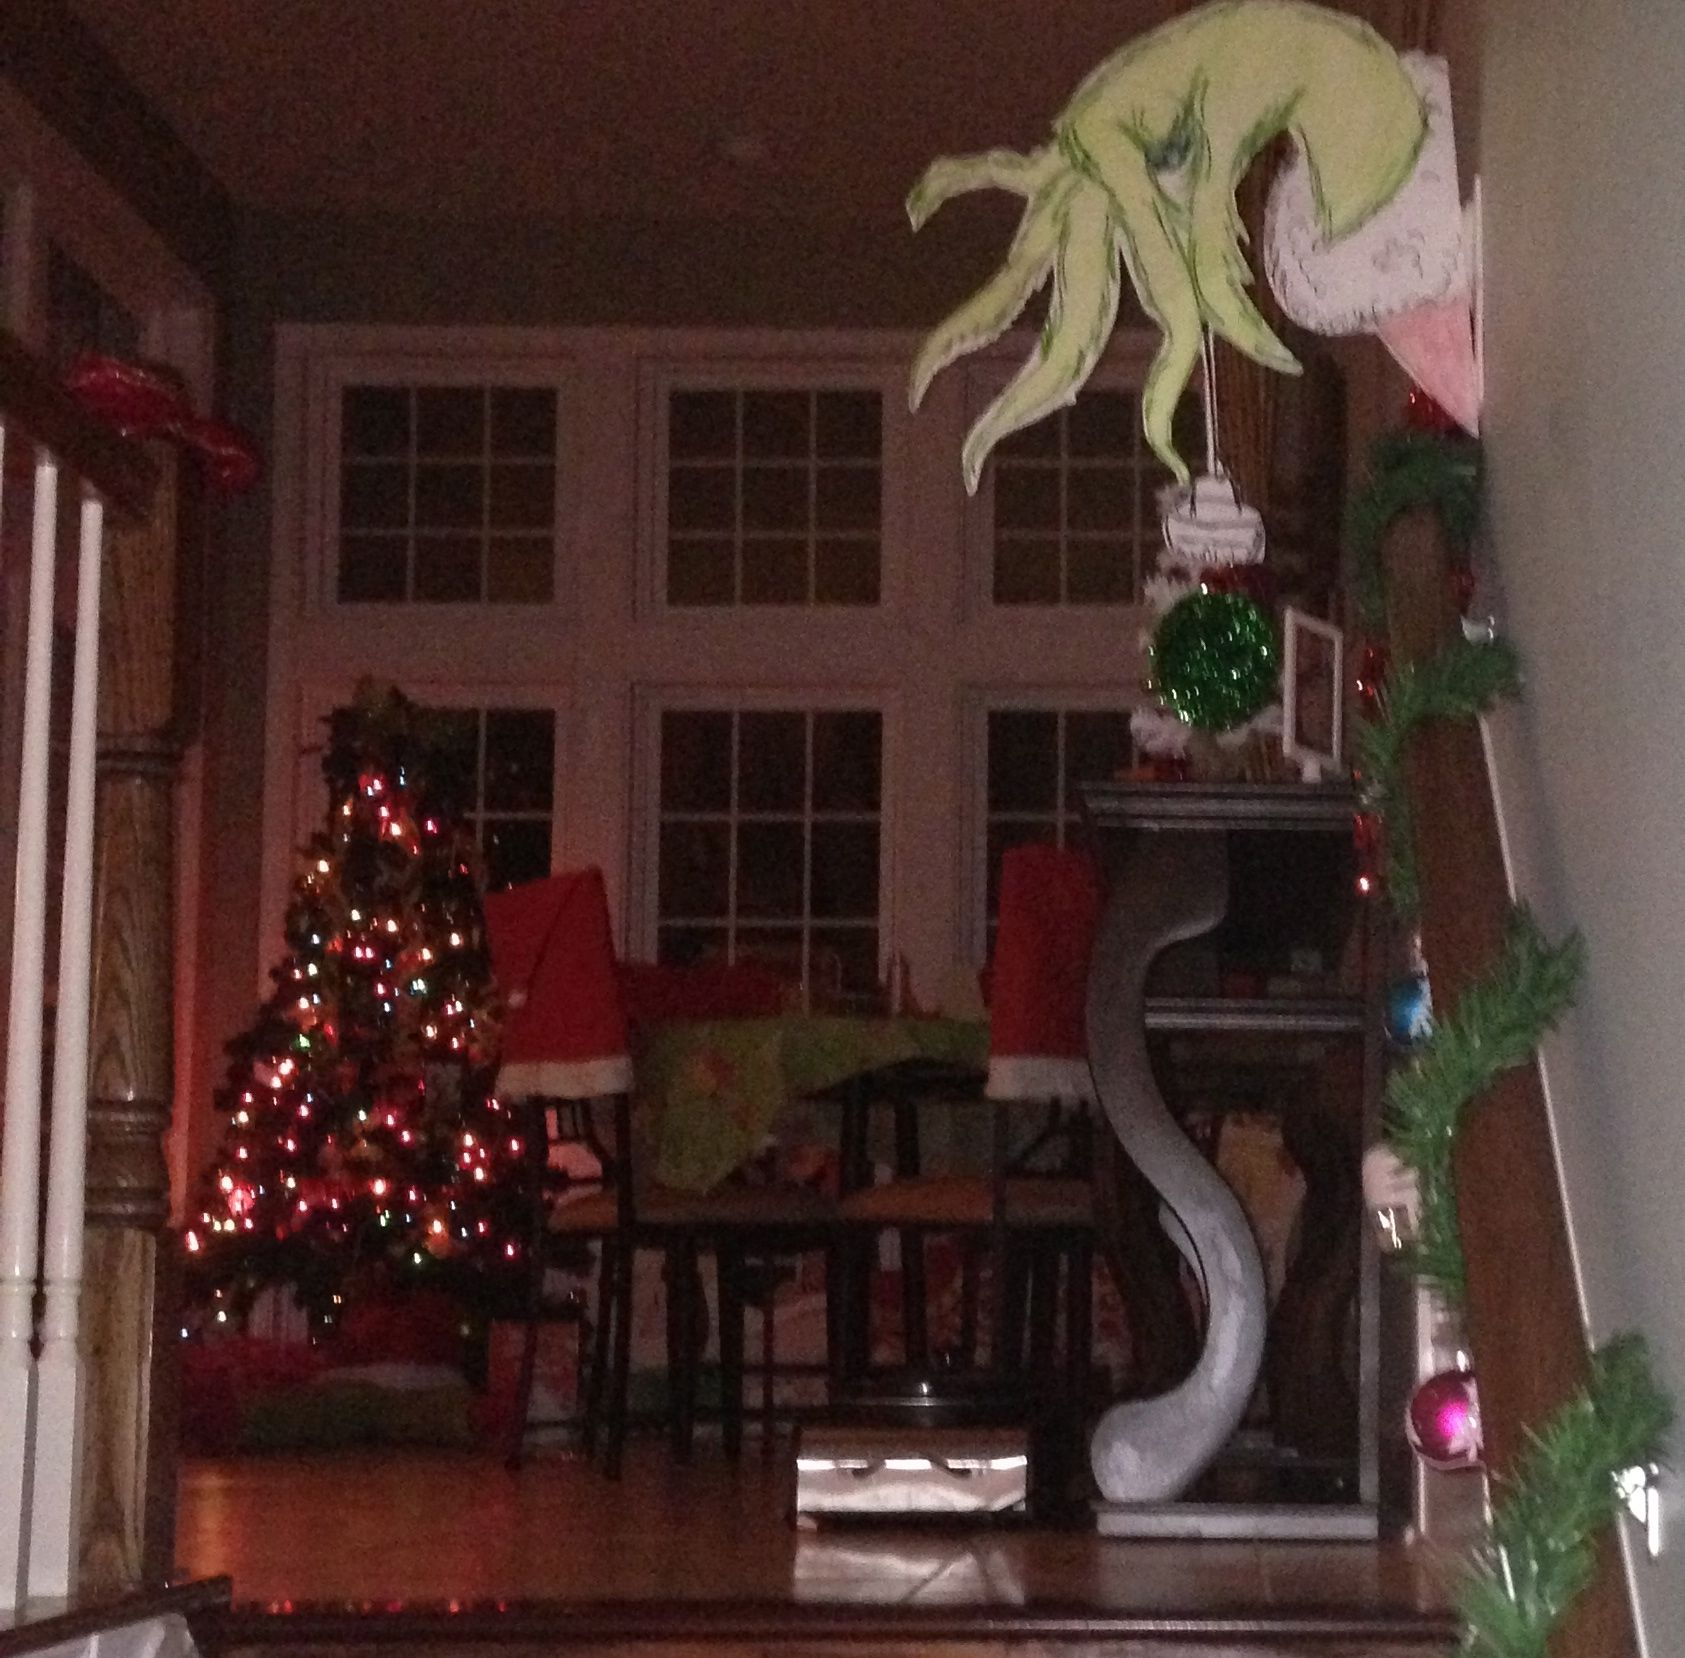 Grinch christmas decorations yard - Greet Your Guests With A 3d Grinch Hand Holding A 3d Ornament Using